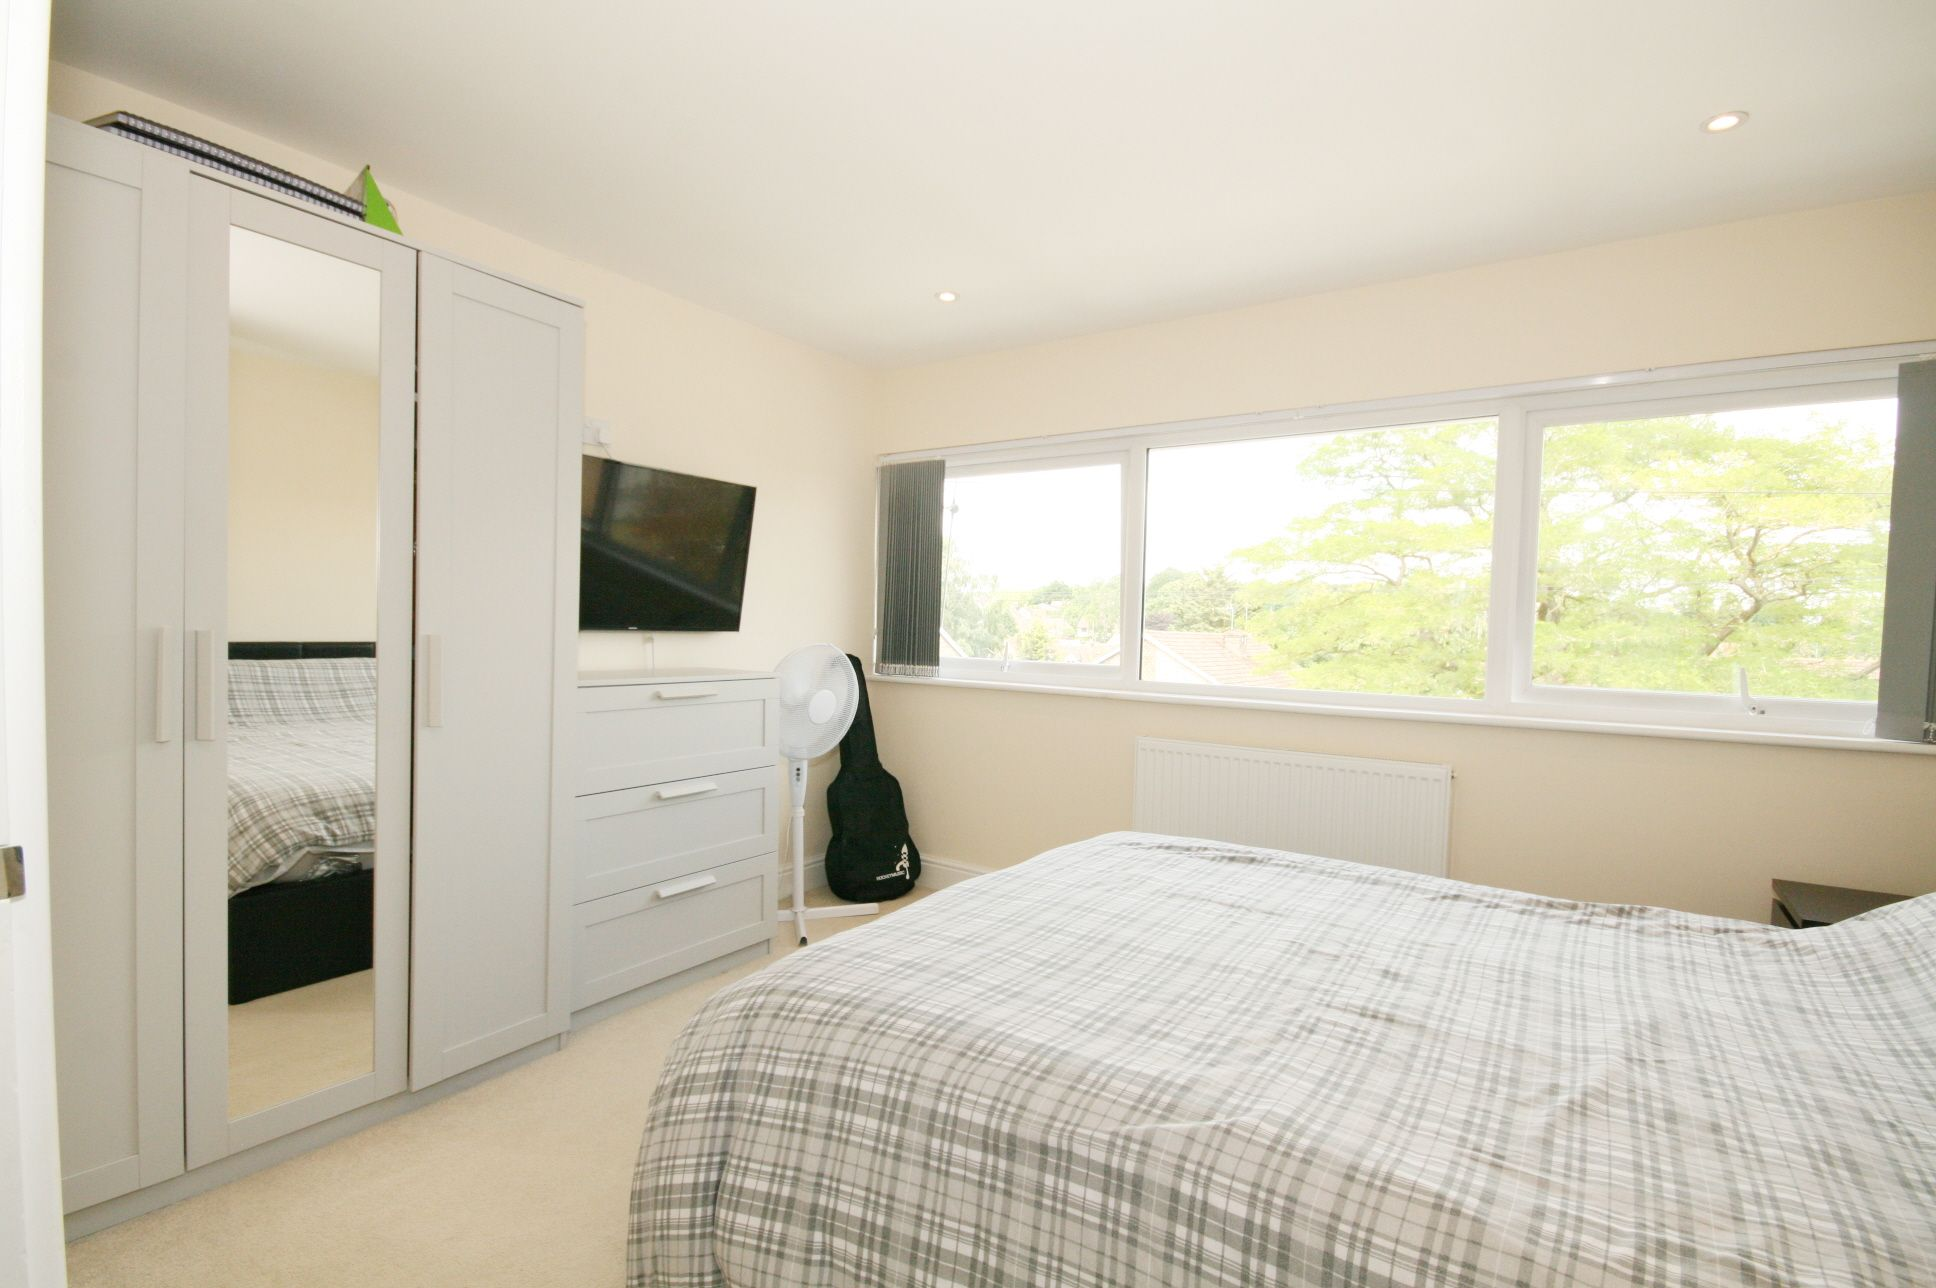 4 Bedroom Town House For Sale - Photograph 4